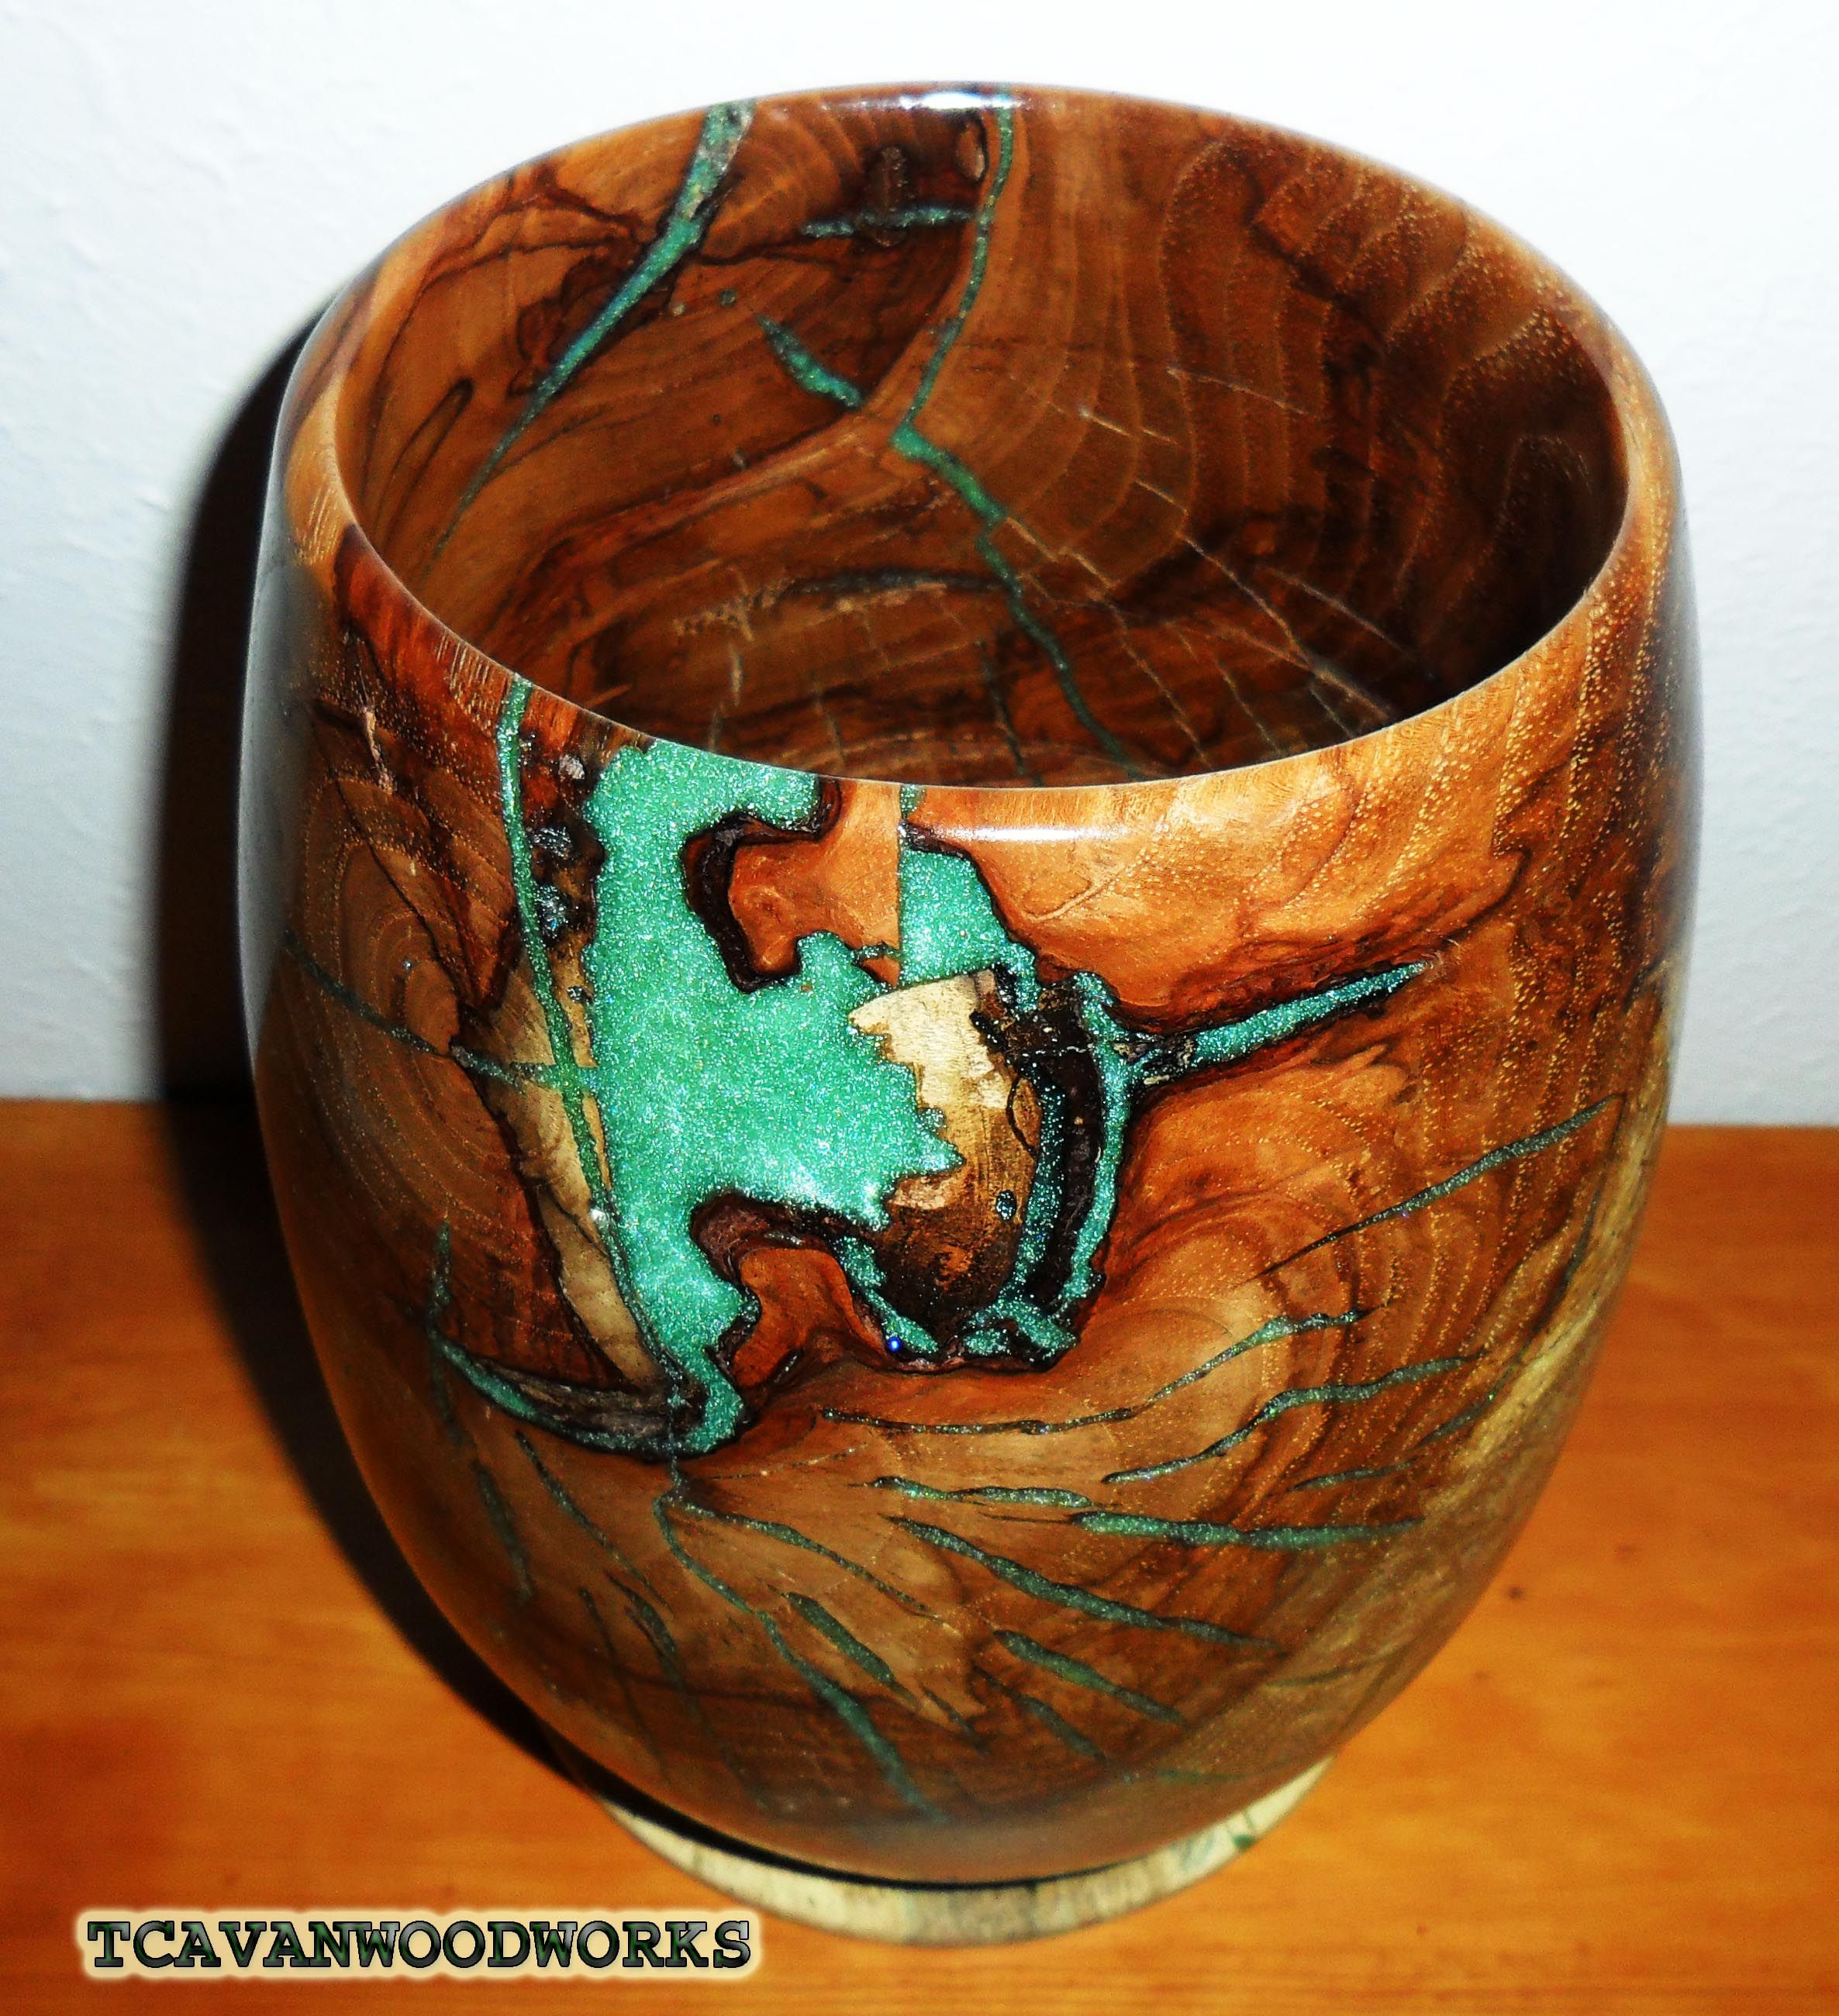 Wood Vessel Inlaid With Jade Green Resin Woodvessel